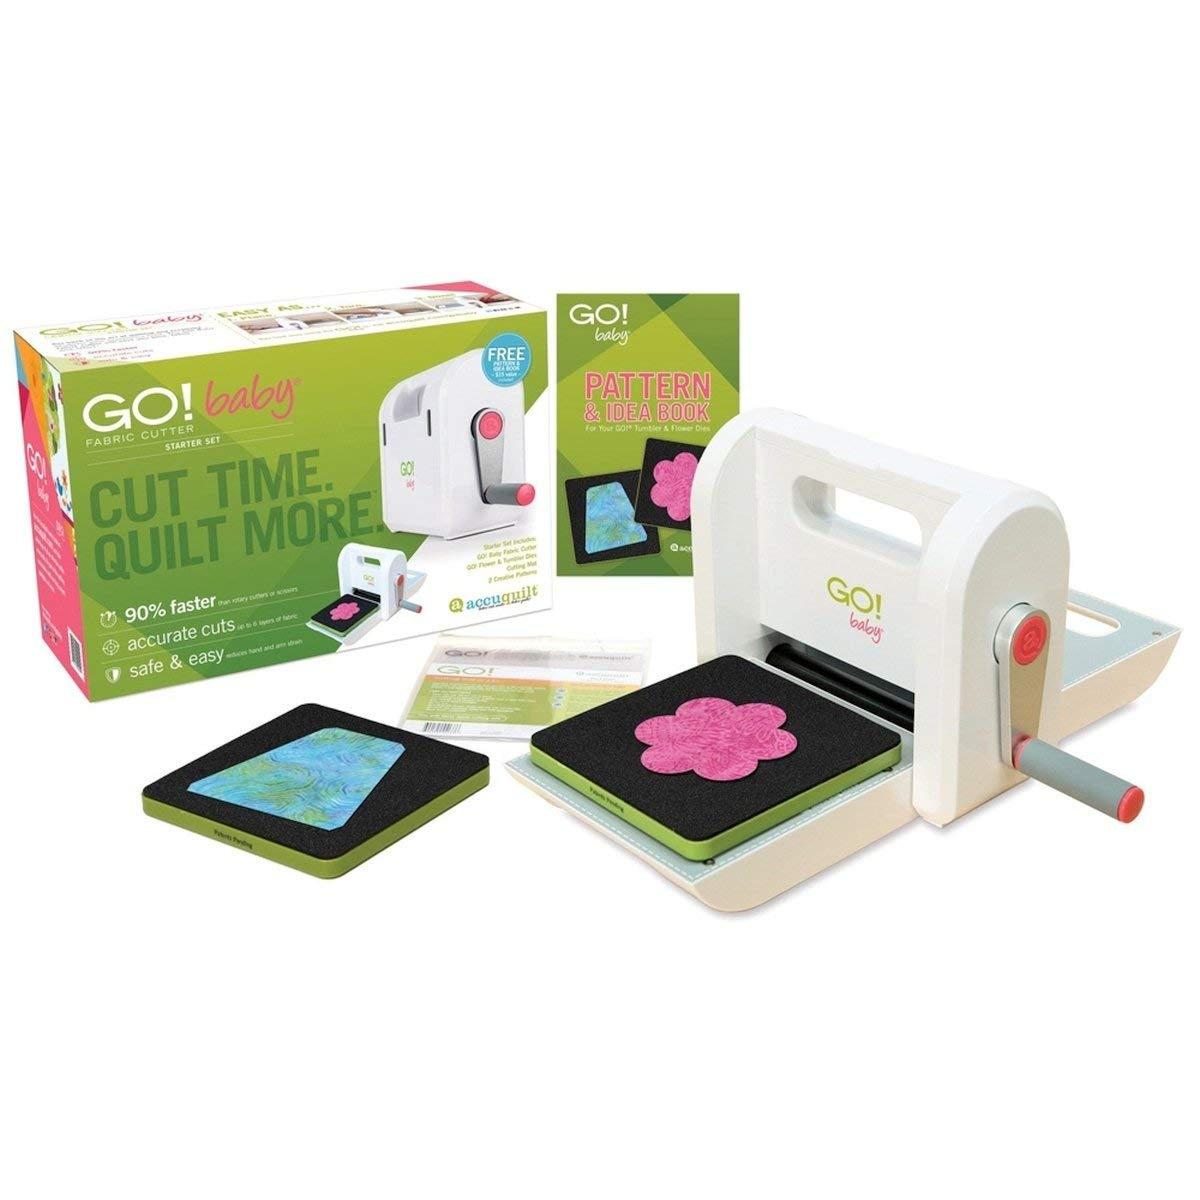 AccuQuilt GO Baby Fabric Cutter Review